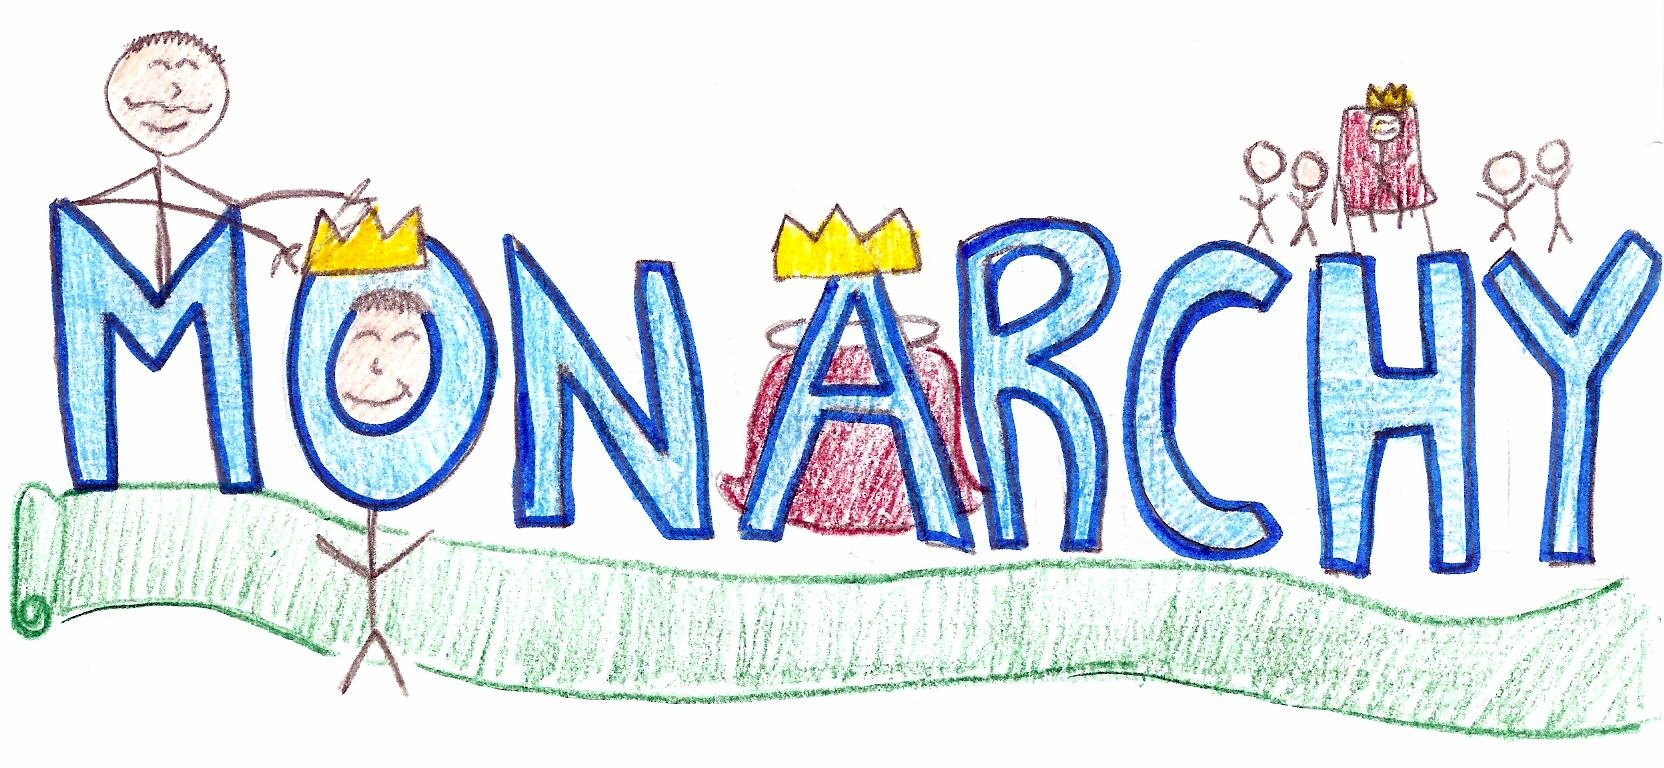 Oligarchy Clipart Some Pictowords | The ...